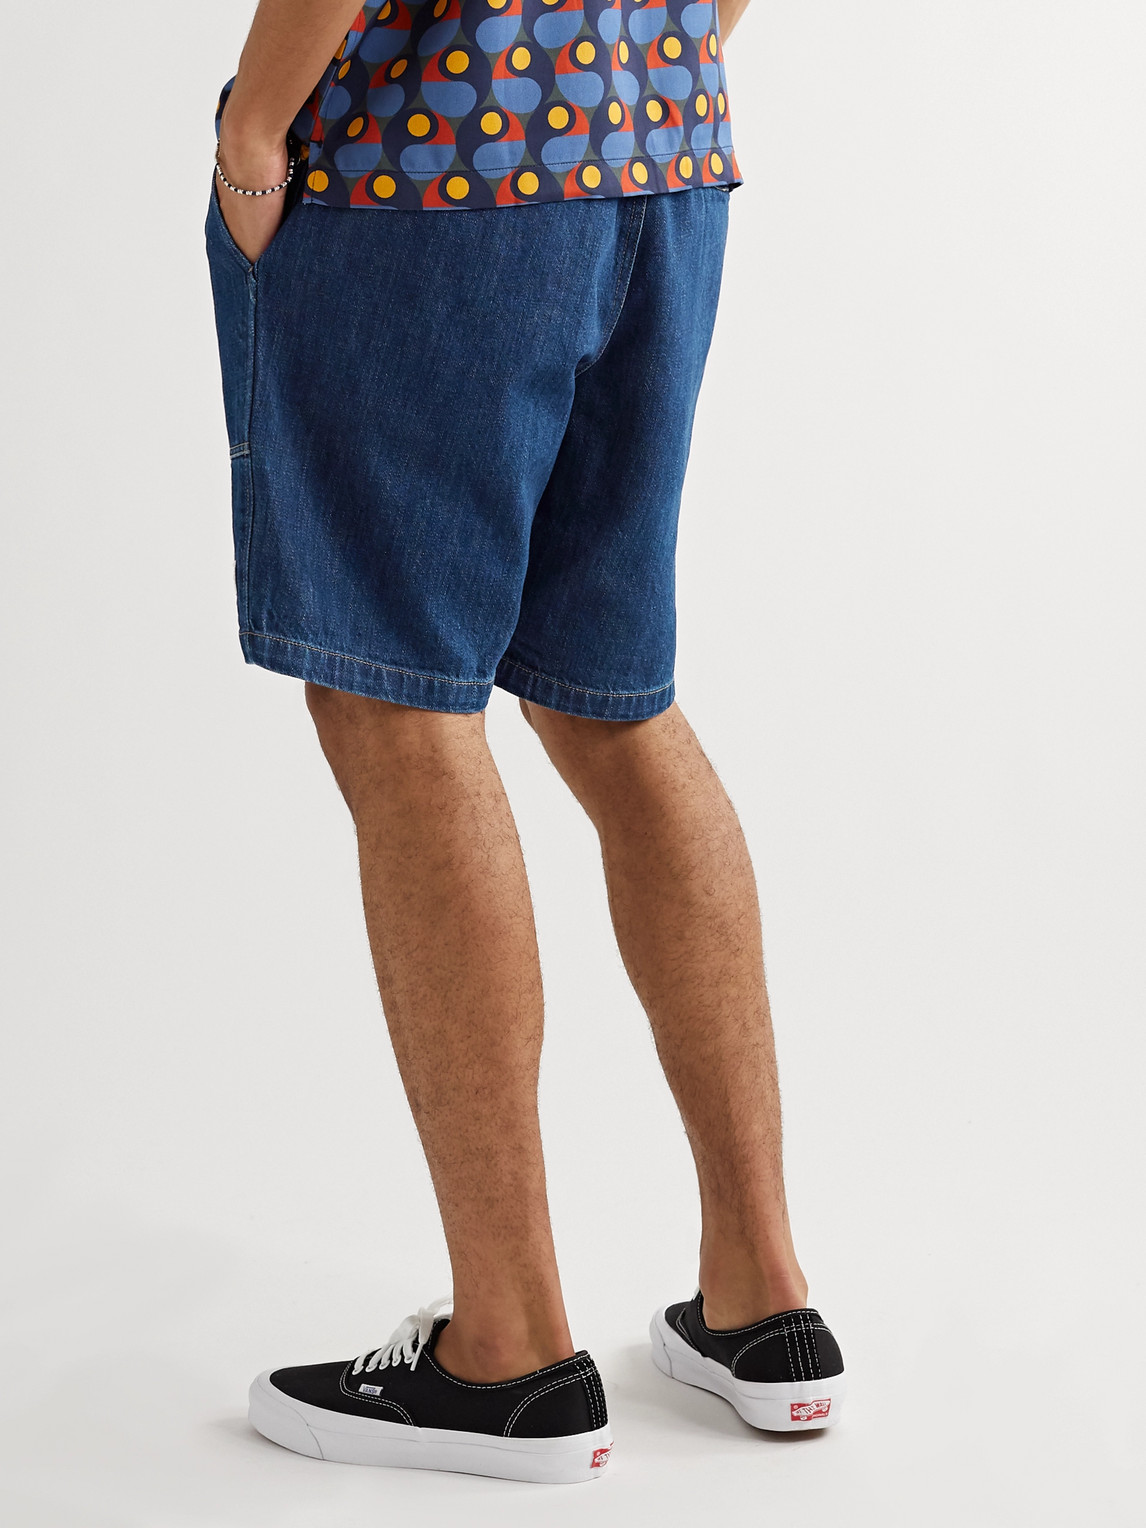 SATURDAYS SURF NYC Denims QUINN INDIGO-DYED DENIM DRAWSTRING SHORTS